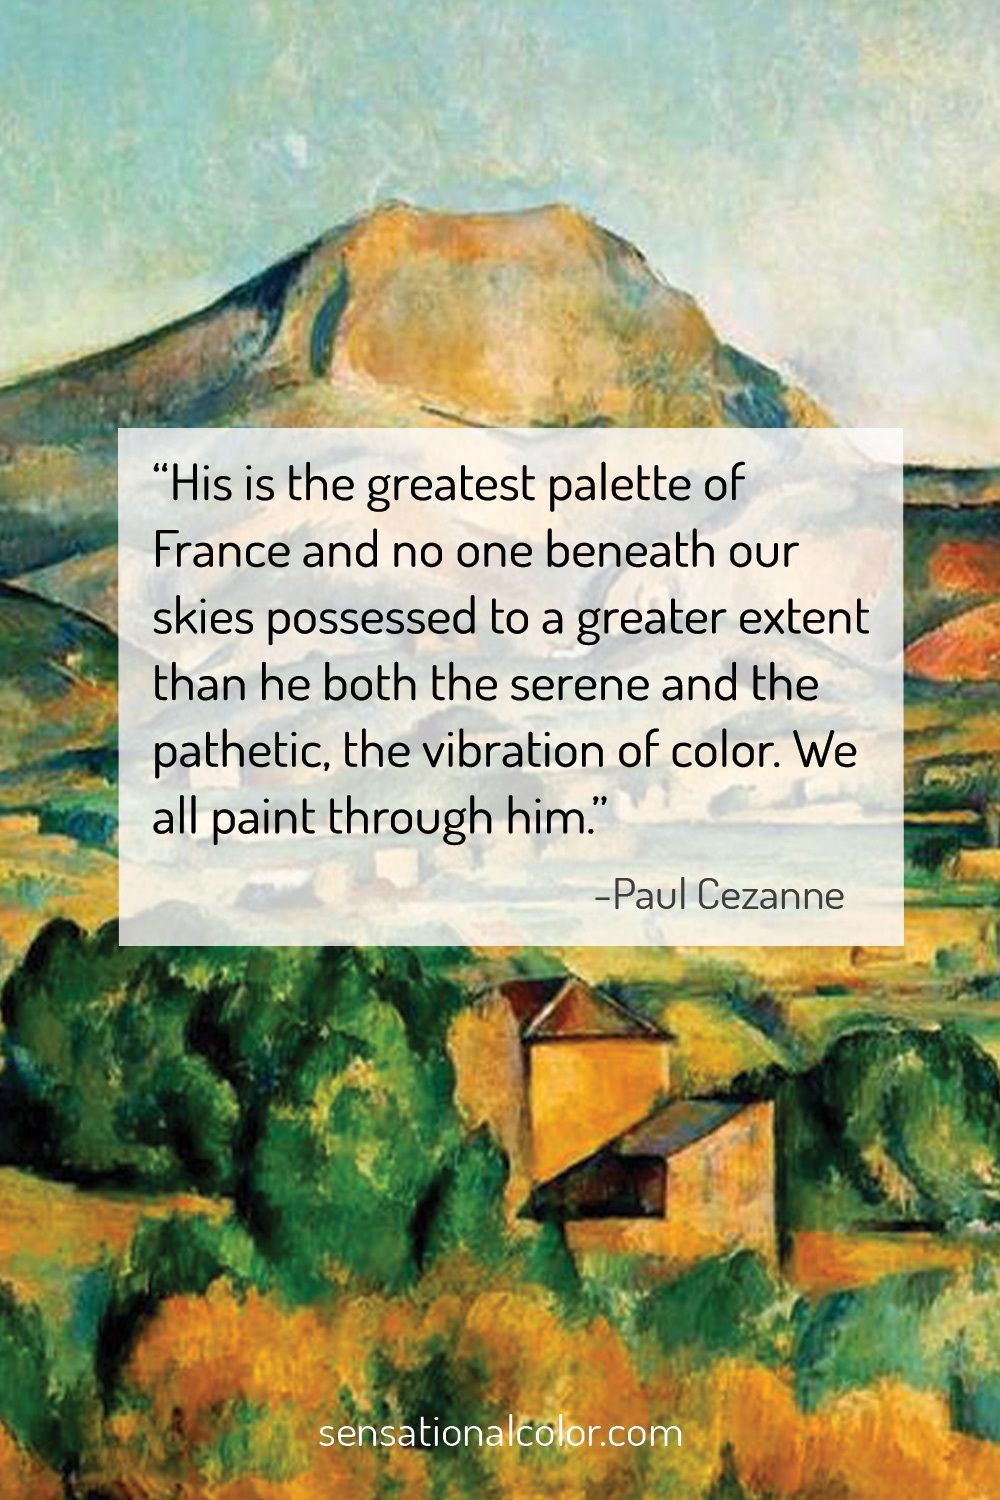 """His is the greatest palette of France and no one beneath our skies possessed to a greater extent than he both the serene and the pathetic, the vibration of color. We all paint through him."" - Paul Cezanne"